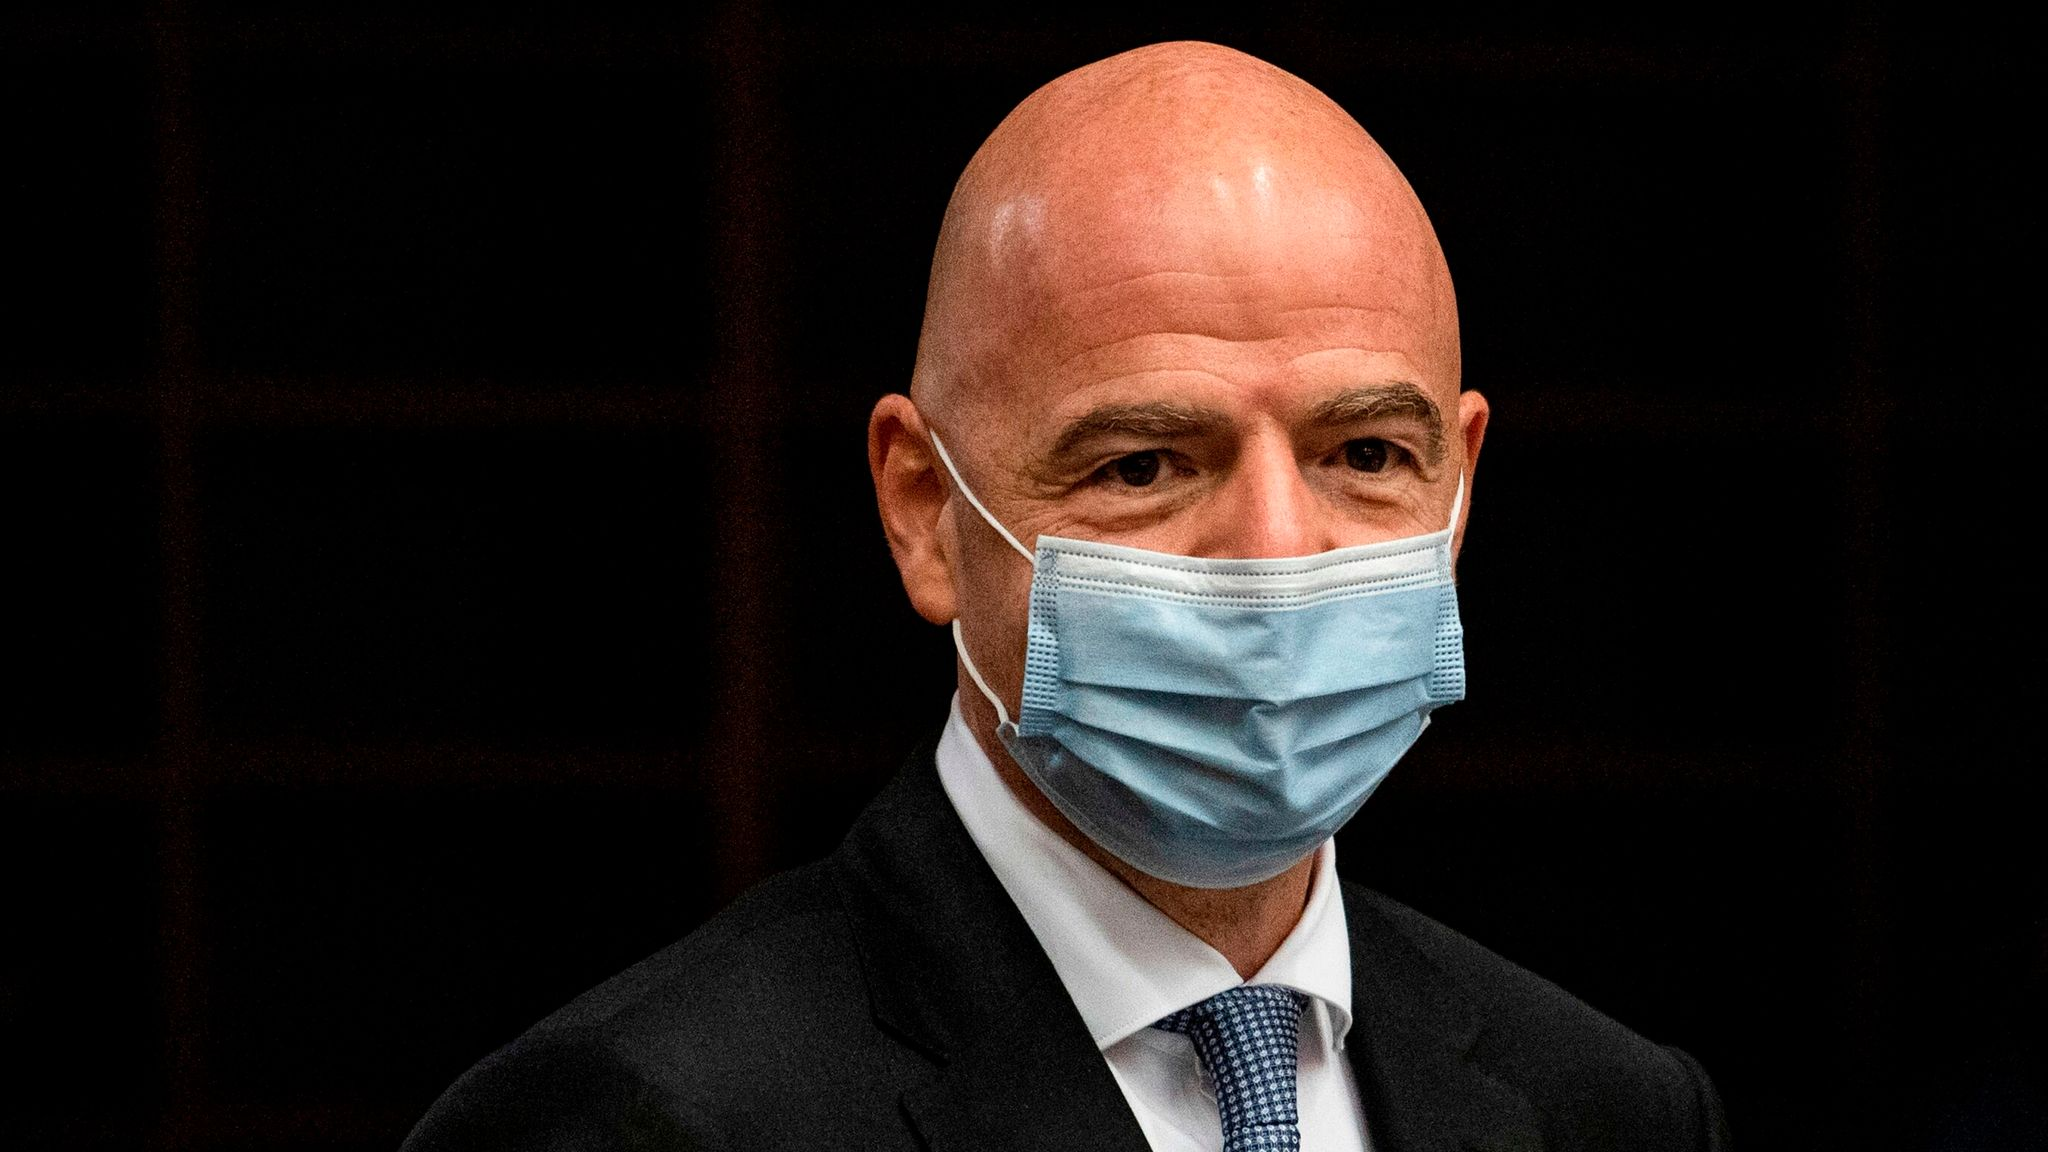 FIFA president Gianni Infantino tests positive for COVID-19 | Football News  | Sky Sports